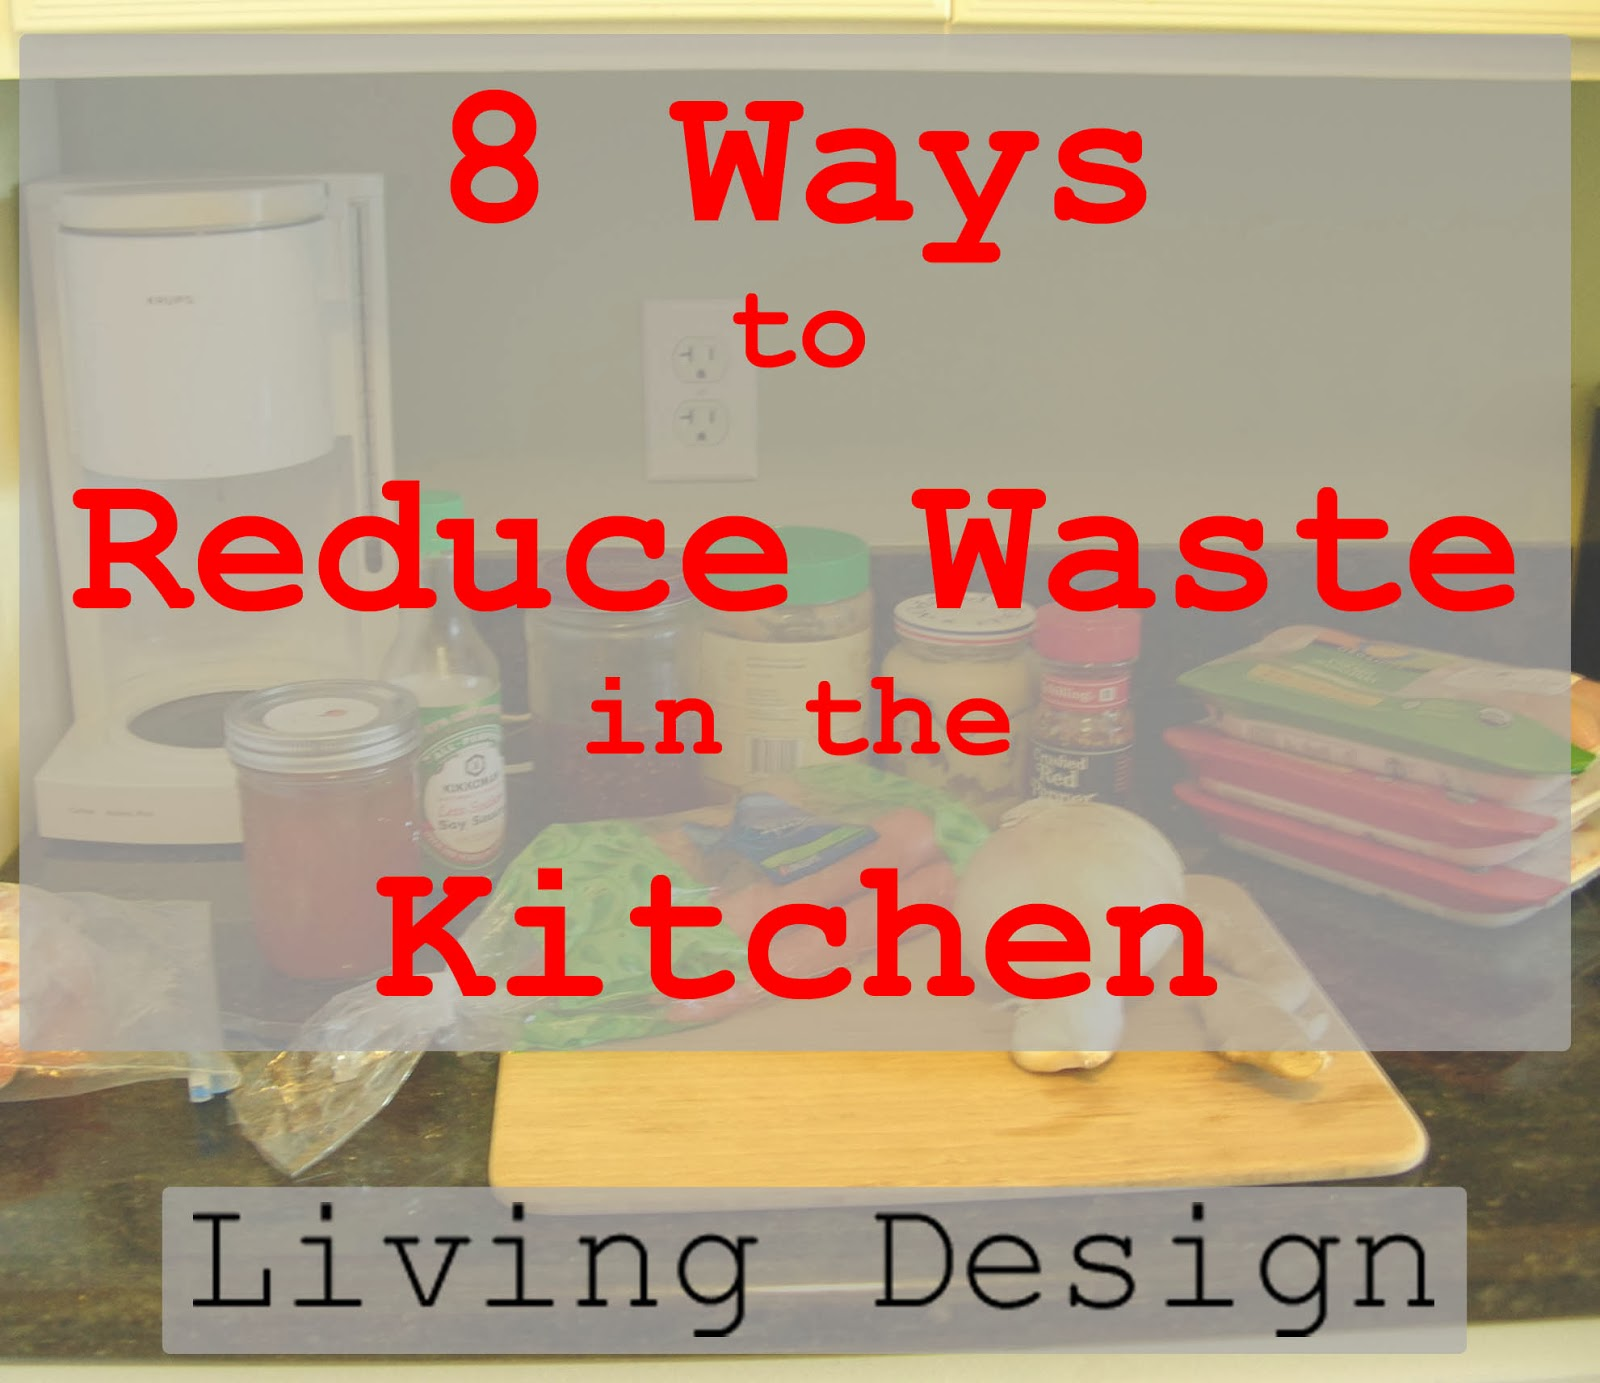 Living Design: Reducing Waste in the Kitchen